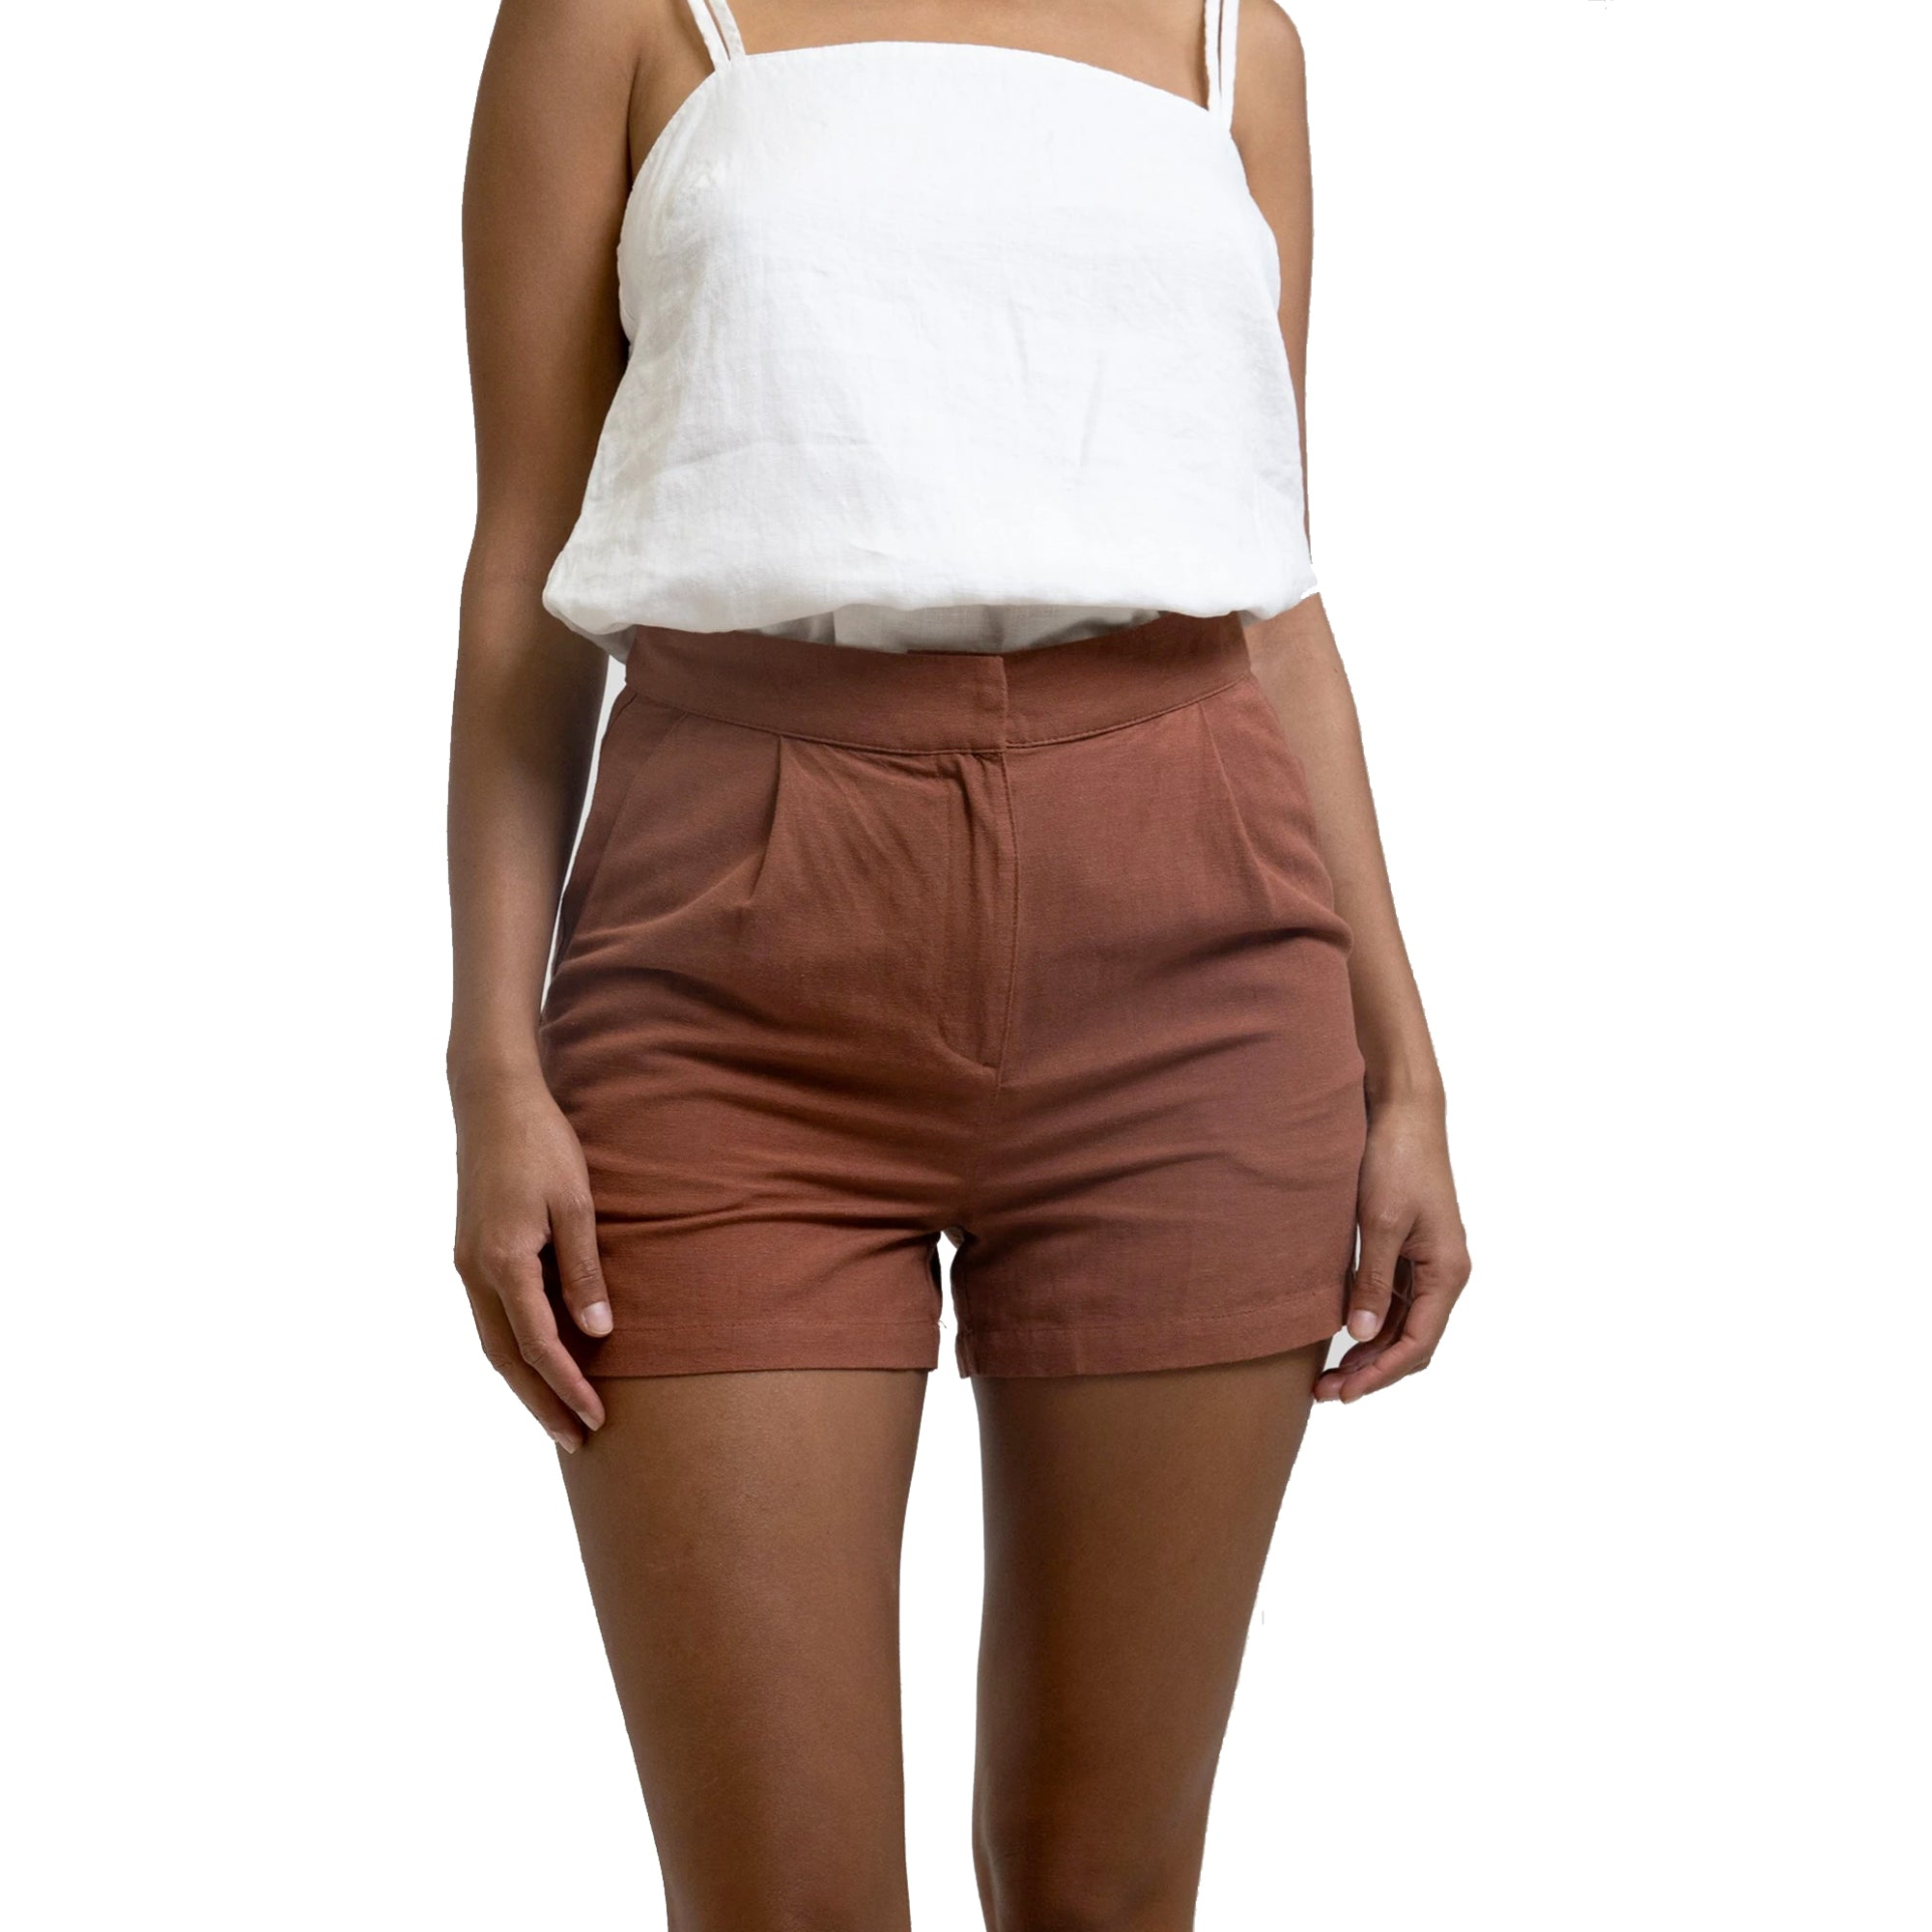 Rhythm Breezy Women's Shorts